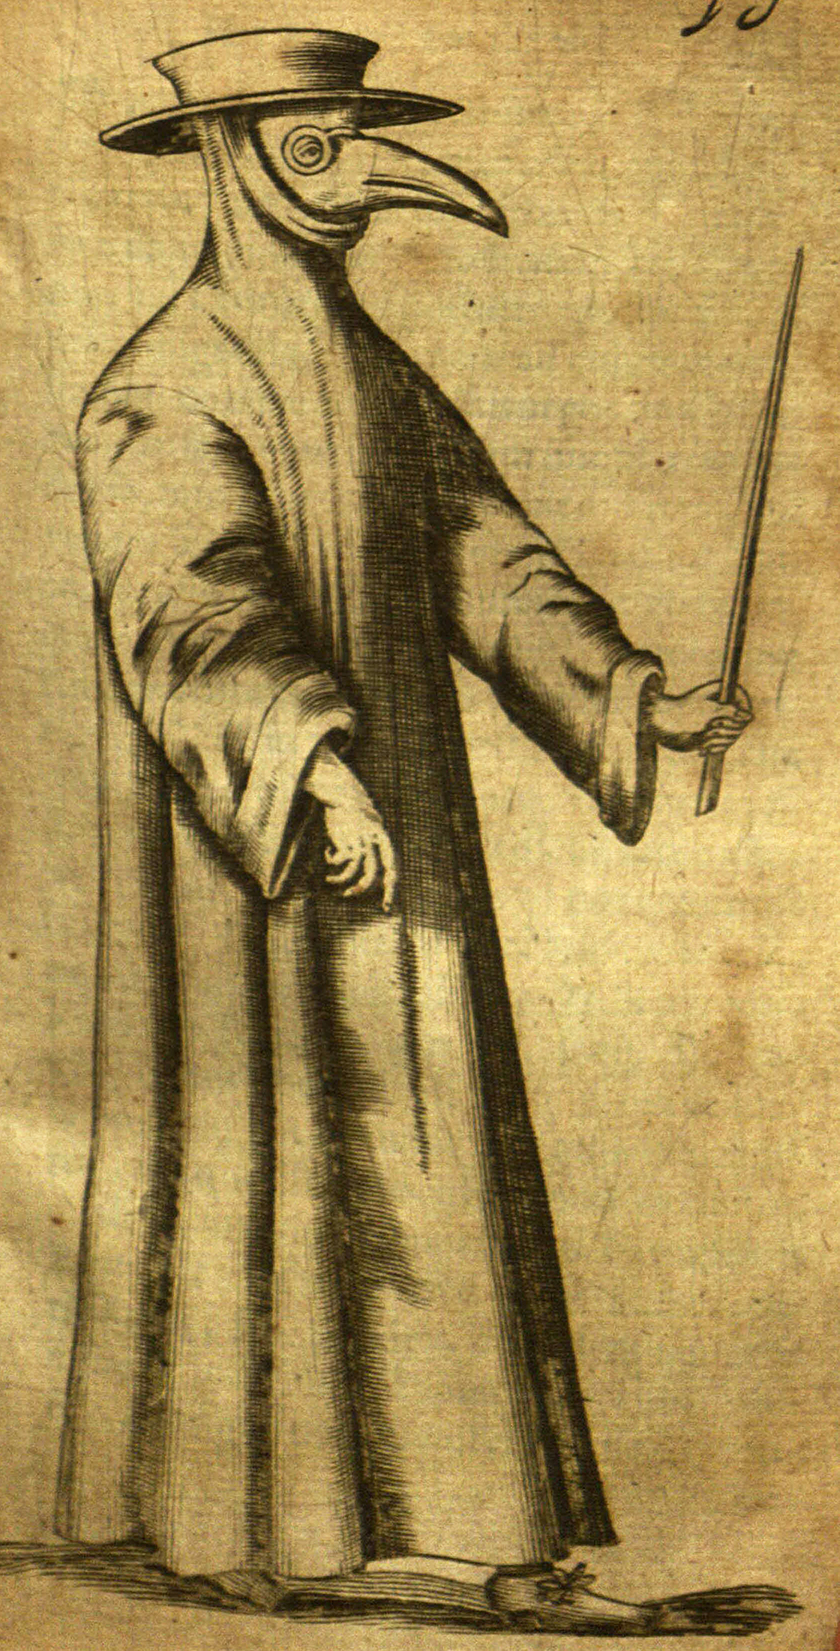 Black and white illustration of a beak doctor, a man wearing long robes and a mask with crystal eyes and a long beak-like nose filled with perfumes.